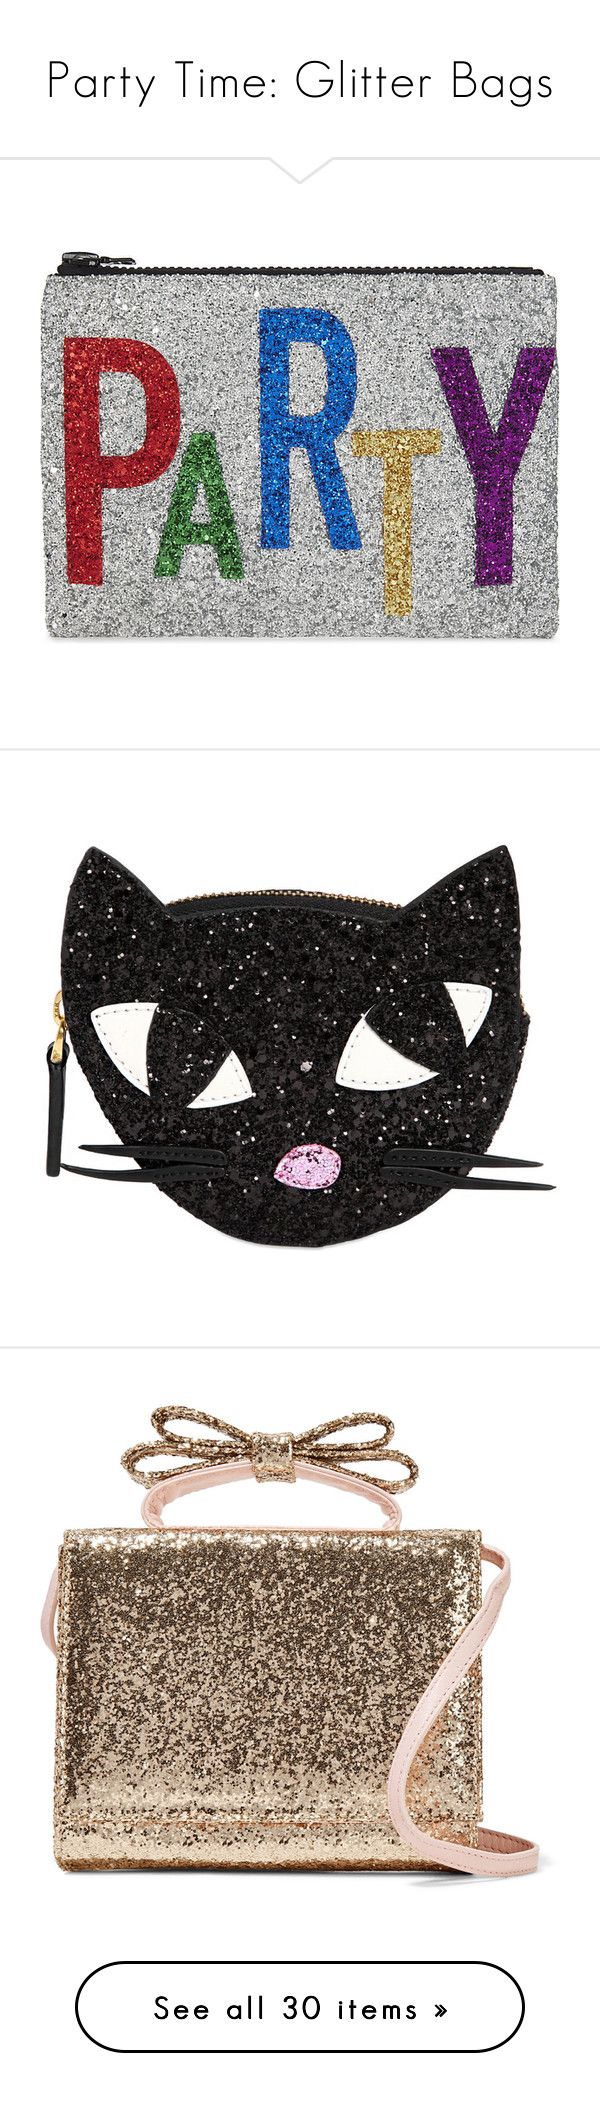 """""""Party Time: Glitter Bags"""" by polyvore-editorial ❤ liked on Polyvore featuring glitterbags, bags, handbags, clutches, glitter handbag, party purses, zip purse, sparkly purses, zipper handbag and wallets"""